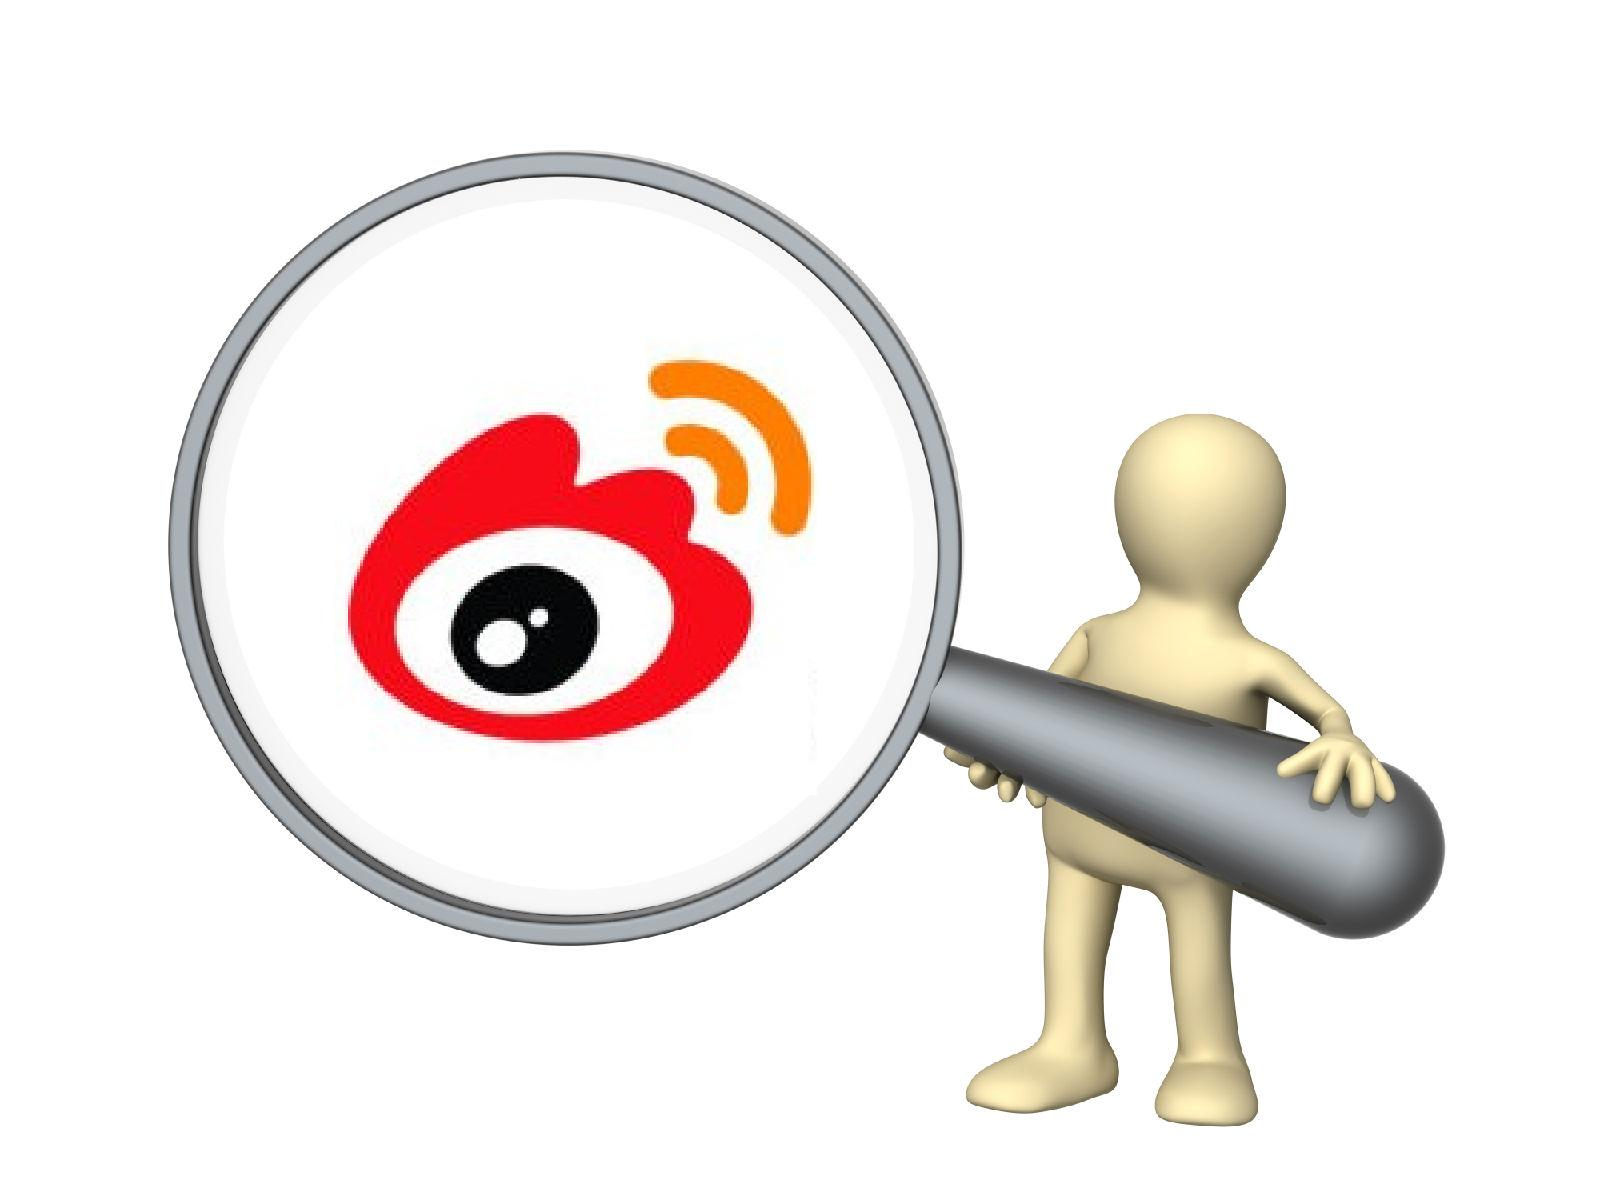 Weibo Users are Becoming more Critical than before